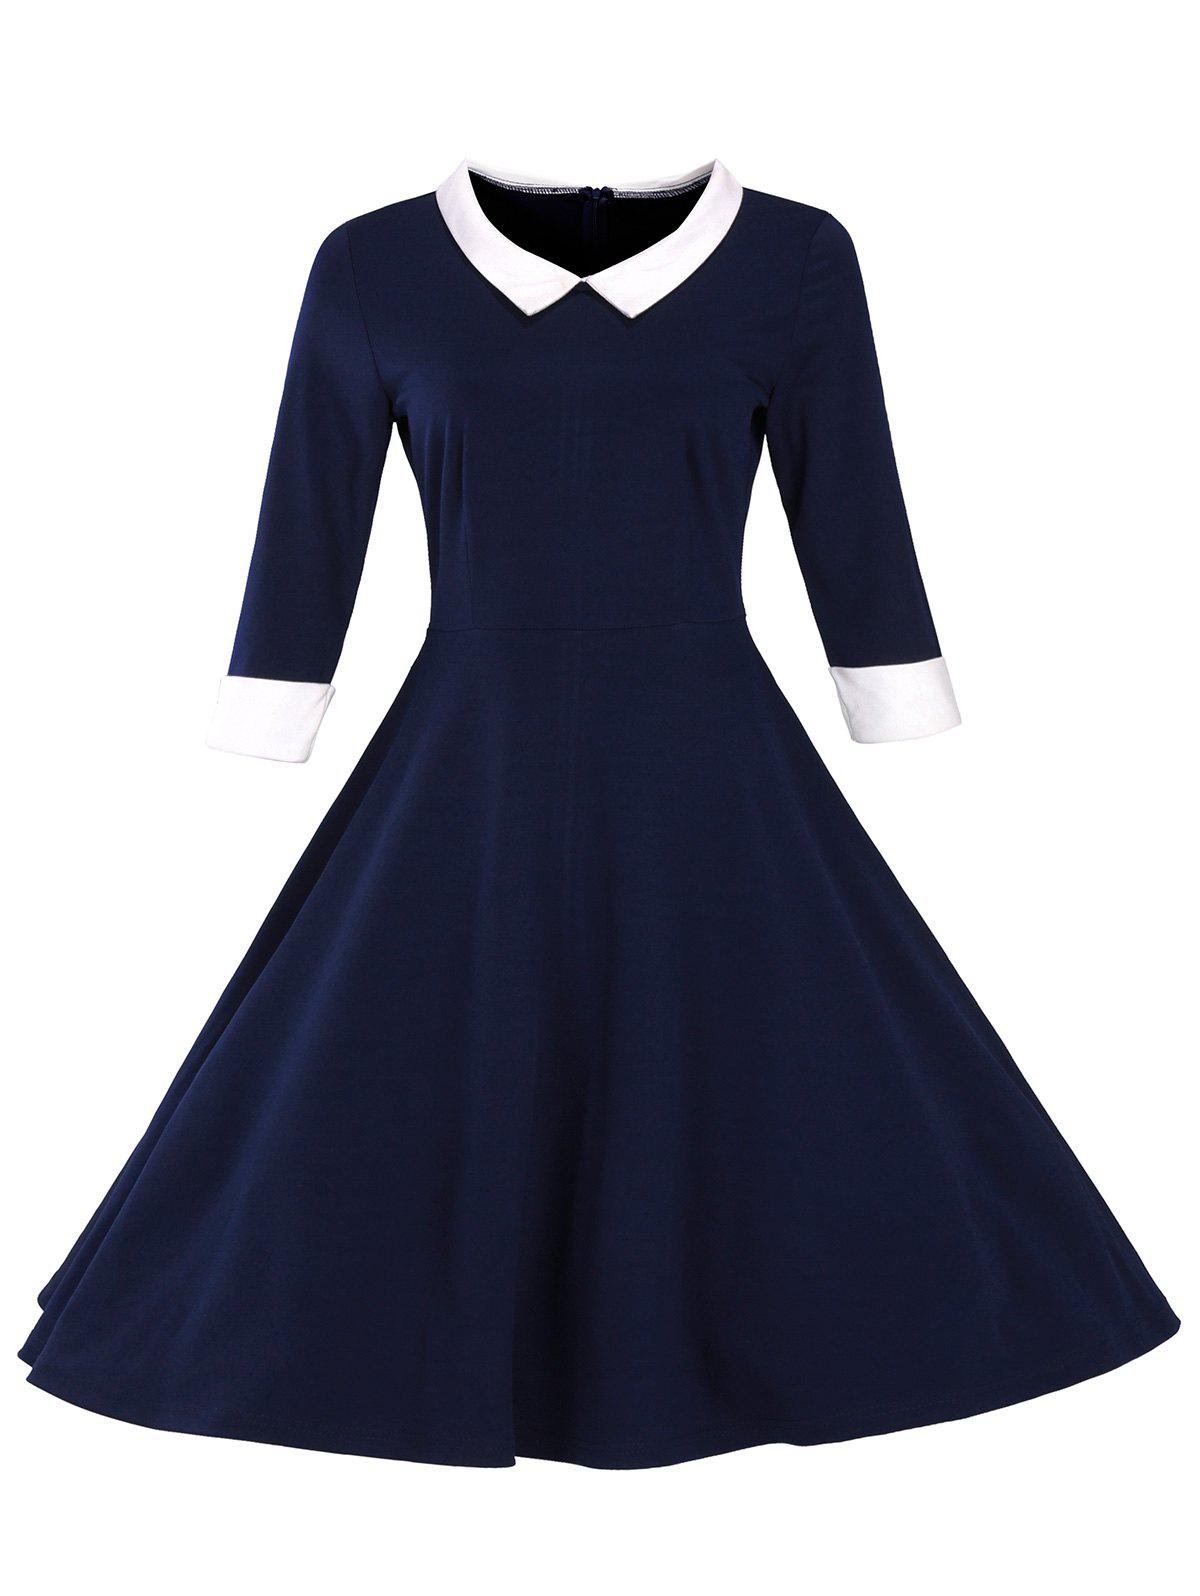 Retro Flat Collar Flare Dress - PURPLISH BLUE M